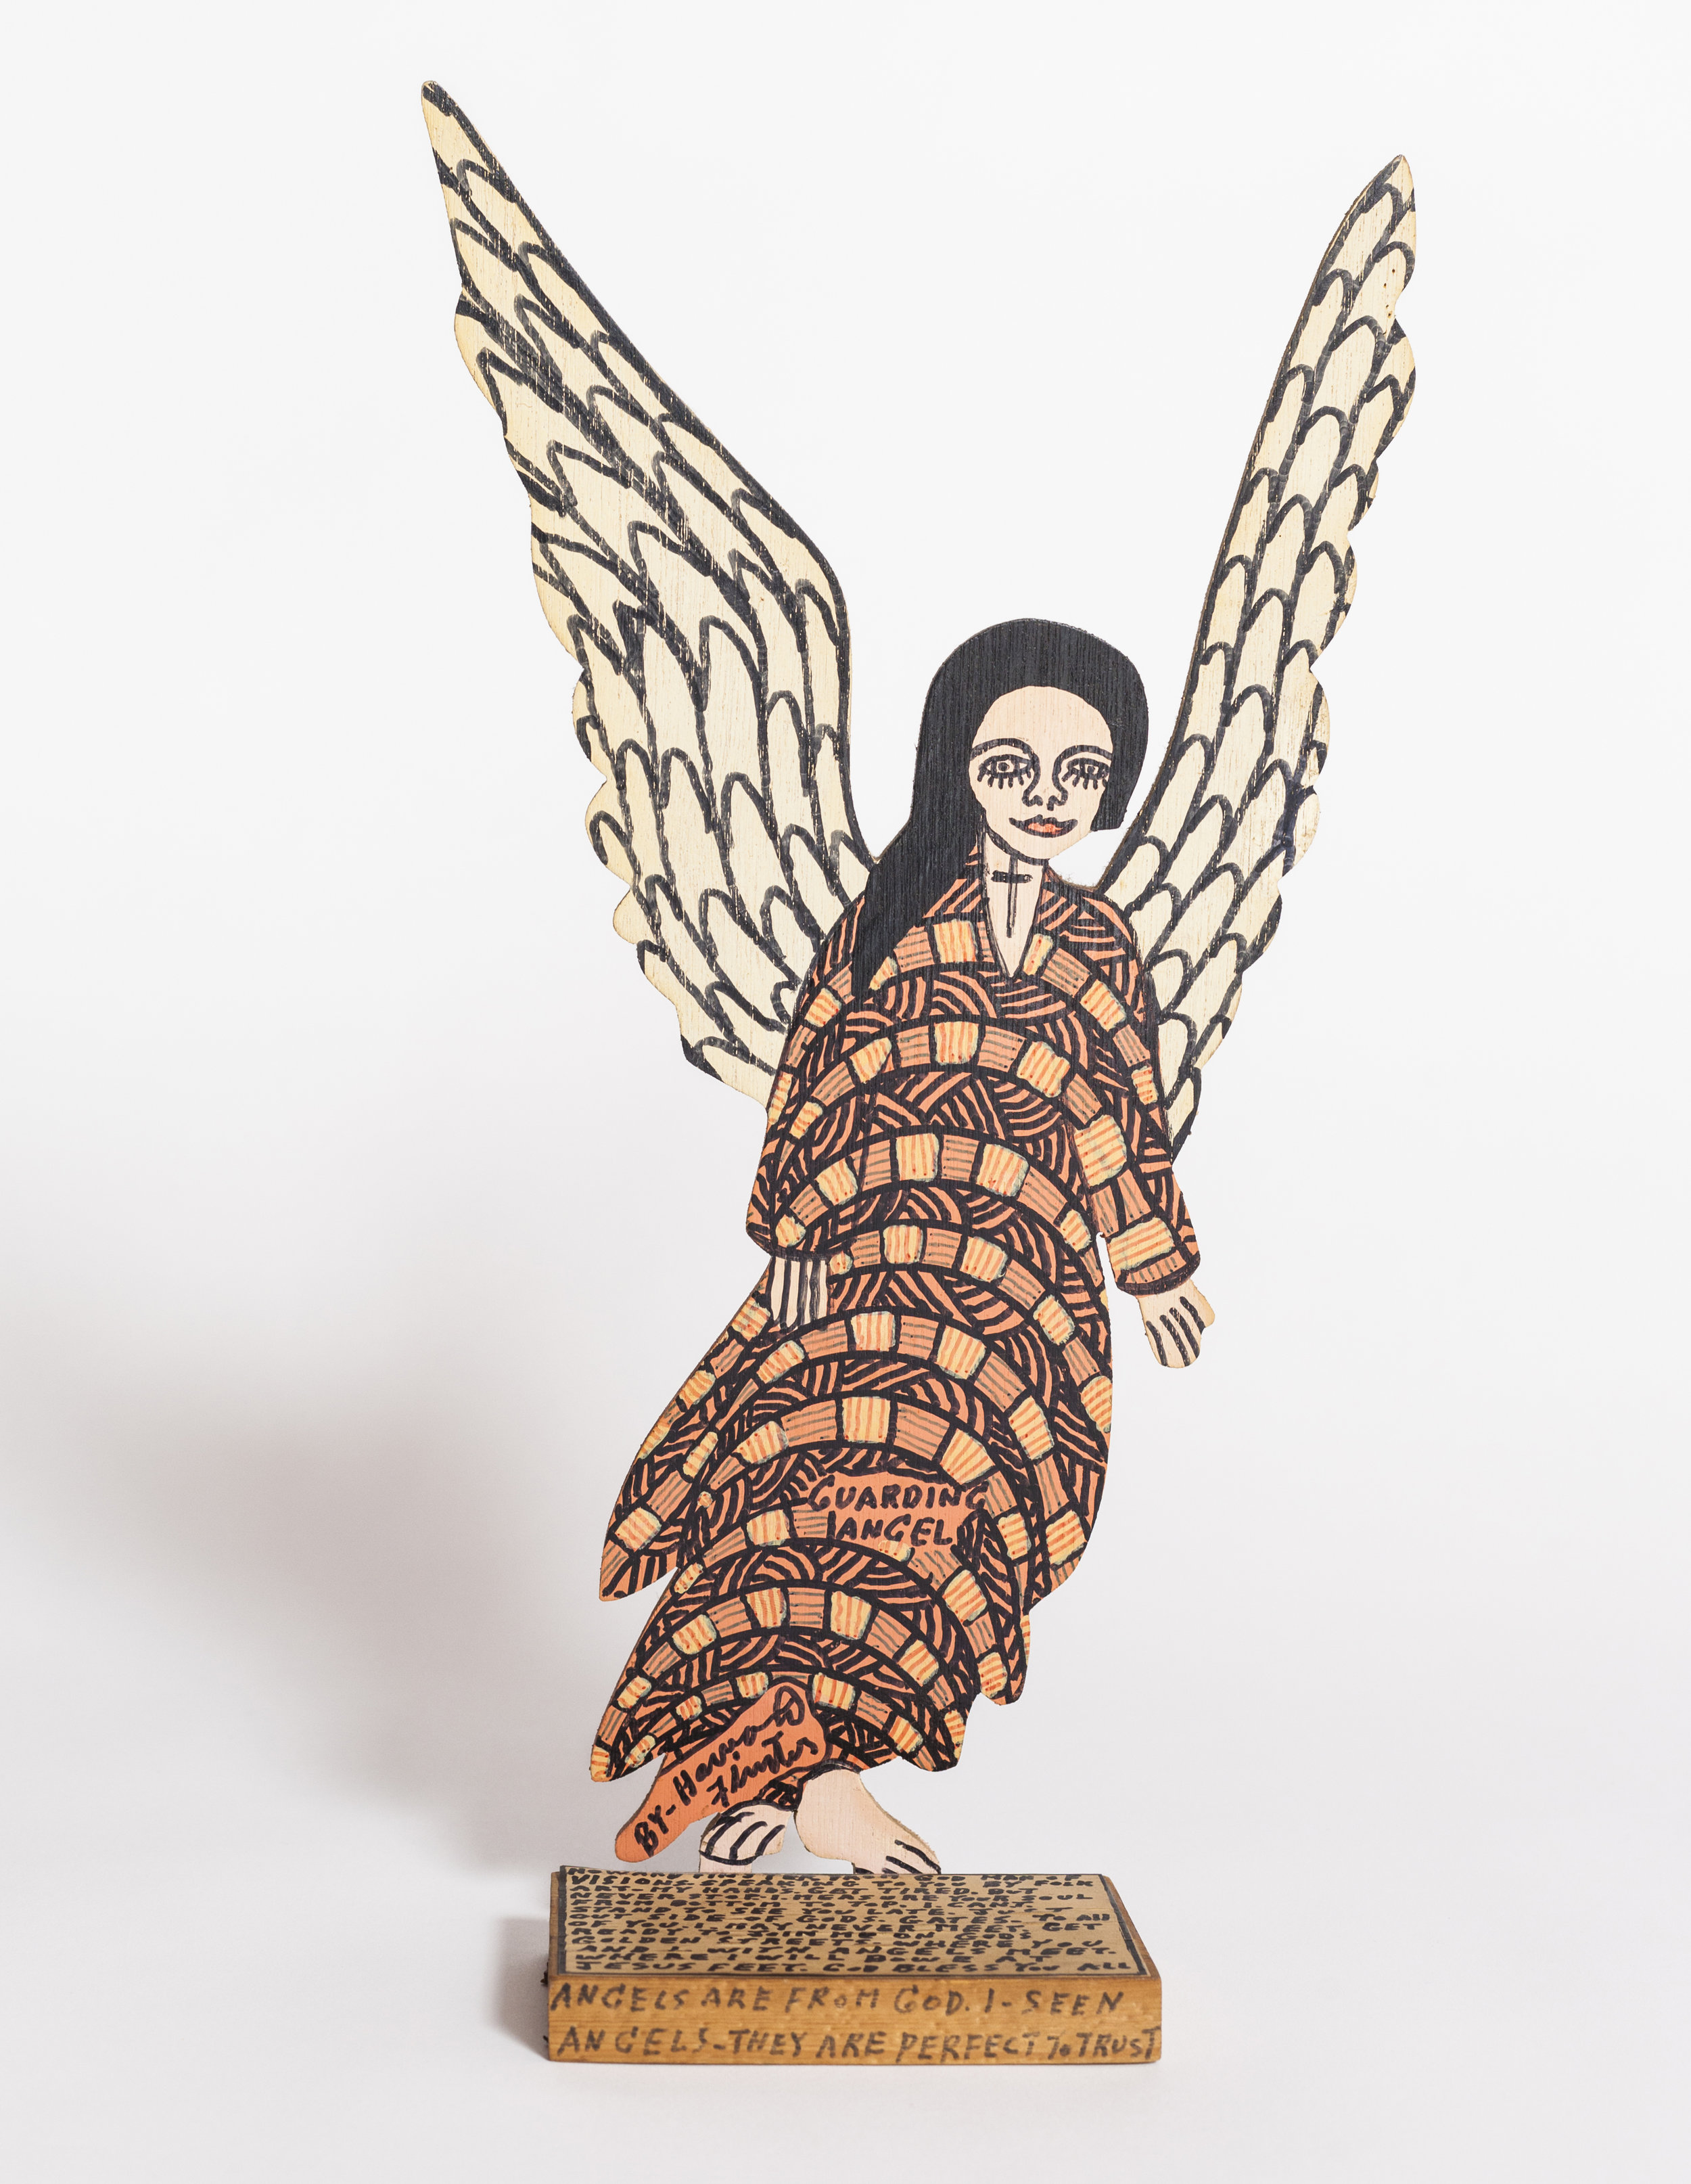 - Howard FinsterGuarding Angel2015Marker, paint and paper on wood